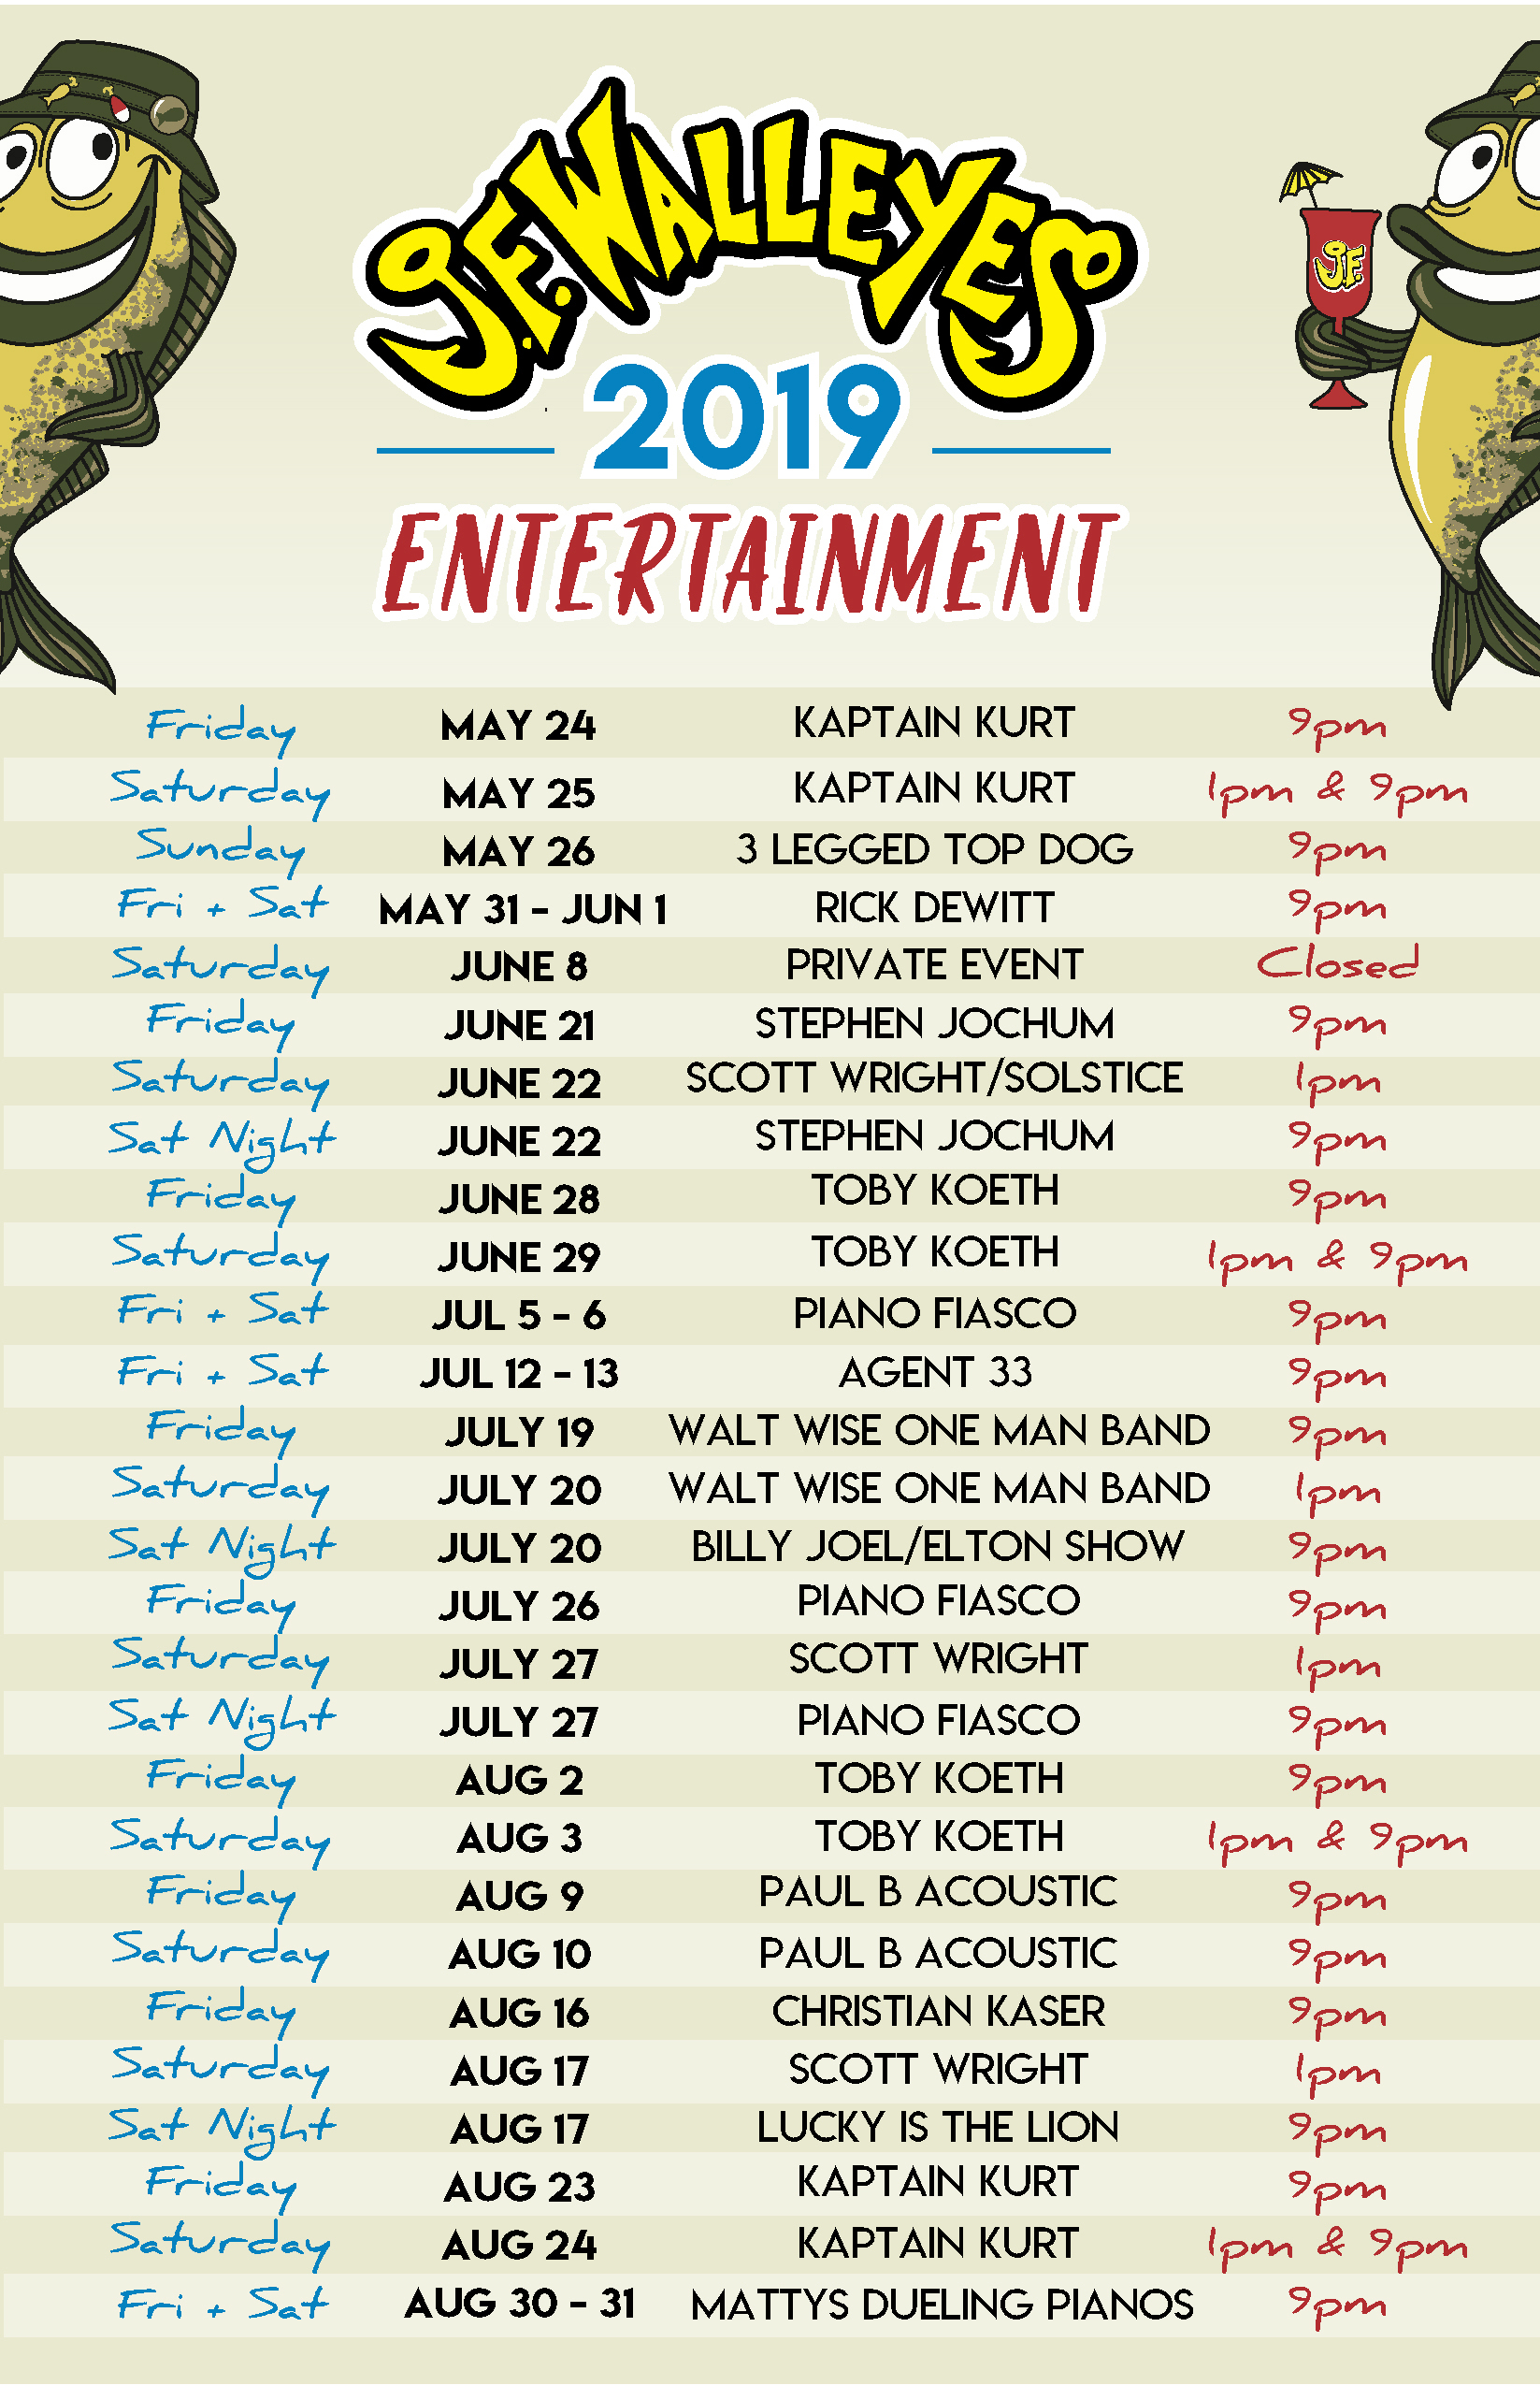 Entertainment schedule: Friday, may 24th- Kaptain Kurt at 9 pm Saturday, May 25th- Kaptain Kurt at 1pm & 9pm Sunday, May 26th- 3 legged Top Dog at 9pm Friday & Saturday May 31st & June 1st- Rick Dewitt at 9pm Saturday, June 8th- Closed for a private event Friday, june 21st- stephen jochum at 9pm Saturday, june 22nd- Scott Wright/Solstice at 1pm & Stephen Jochum at 9pm Friday, June 28th- Toby Koeth 9pm Saturday, june 29th- Toby Koeth 1pm & 9pm Friday & Saturday July 5th-6th- Plano Fiasco at 9pm Friday & Saturday July 12-13th- Agent 33 at 9pm Friday july 19th- Walt Wise One Man Band at 9pm Saturday, July 20th- Walt Wise One Man Band at 1pm & BillyJoel/Elton Show at 9pm Friday, July 26th- Piano Fiasco at 9pm Saturday, July 27th- Scott Wright at 1pm & Piano Fiasco at 9pm Friday, August 2nd-Toby Koeth at 9pm Saturday, August 3rd- Toby Koeth at 1pm & 9pm Friday, August 9th- Paul B Acoustic at 9pm Saturday, August 10th- Paul B Acoustic at 9pm Friday, August 16th- Christian Kaser at 9pm Saturday, August 17th- Scott Wright at 1pm & Lucky is the Lion at 9pm Friday, August 23rd- Kaptain Kurt at 9pm Saturday, August 24th- Kaptain Kurt at 1pm & 9pm Friday & Saturday August 30th & 31st- Mattys Dueling Pianos at 9pm